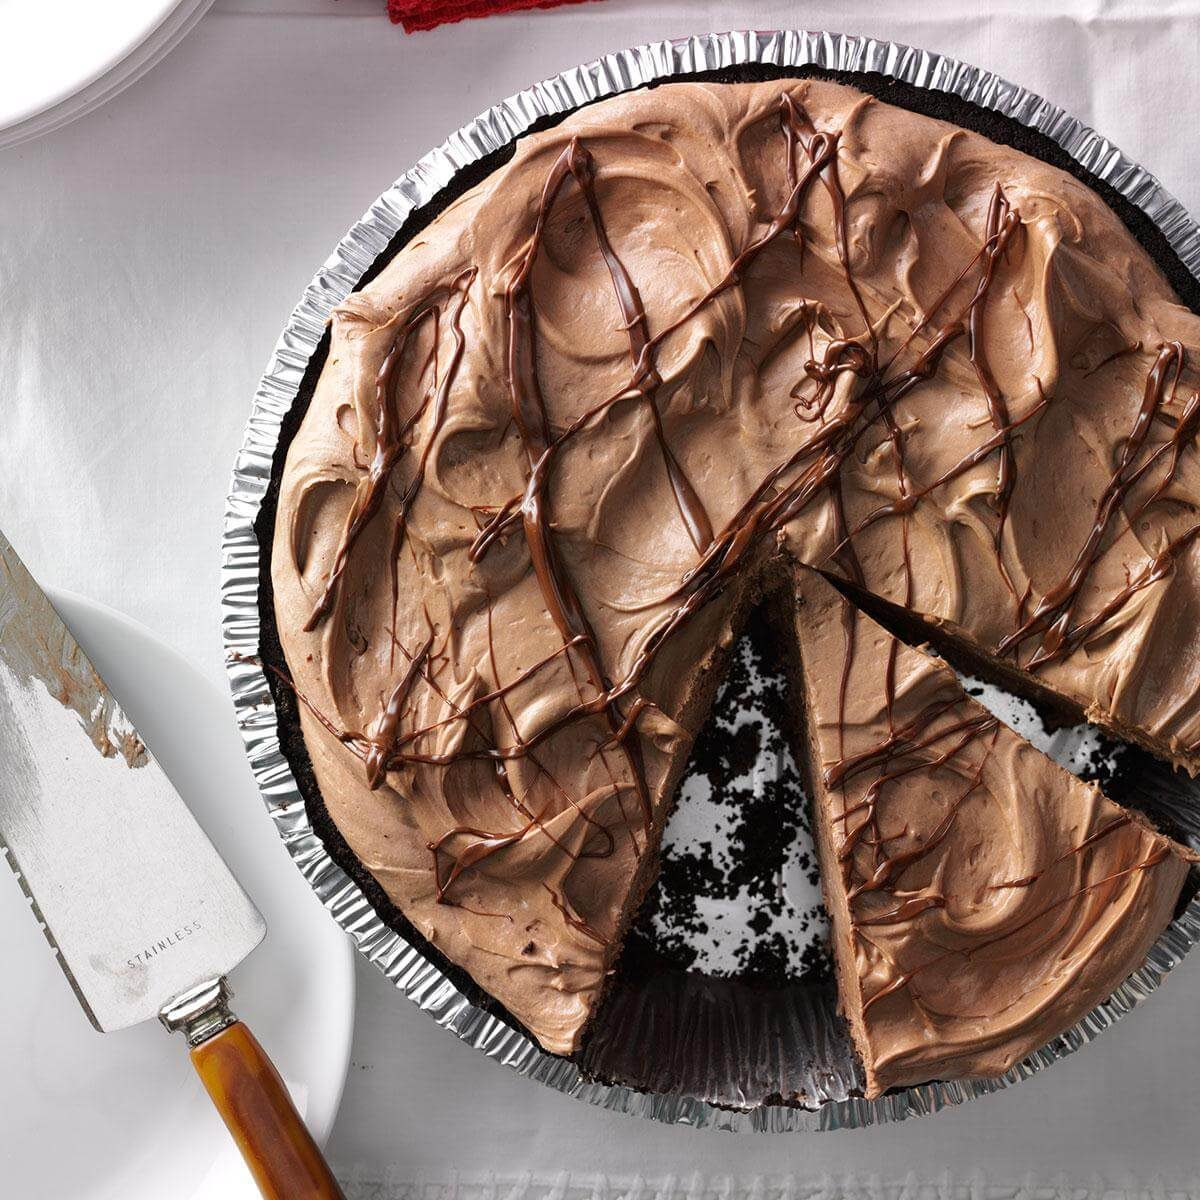 30 Dreamy, Decadent and Delicious Chocolate Pies